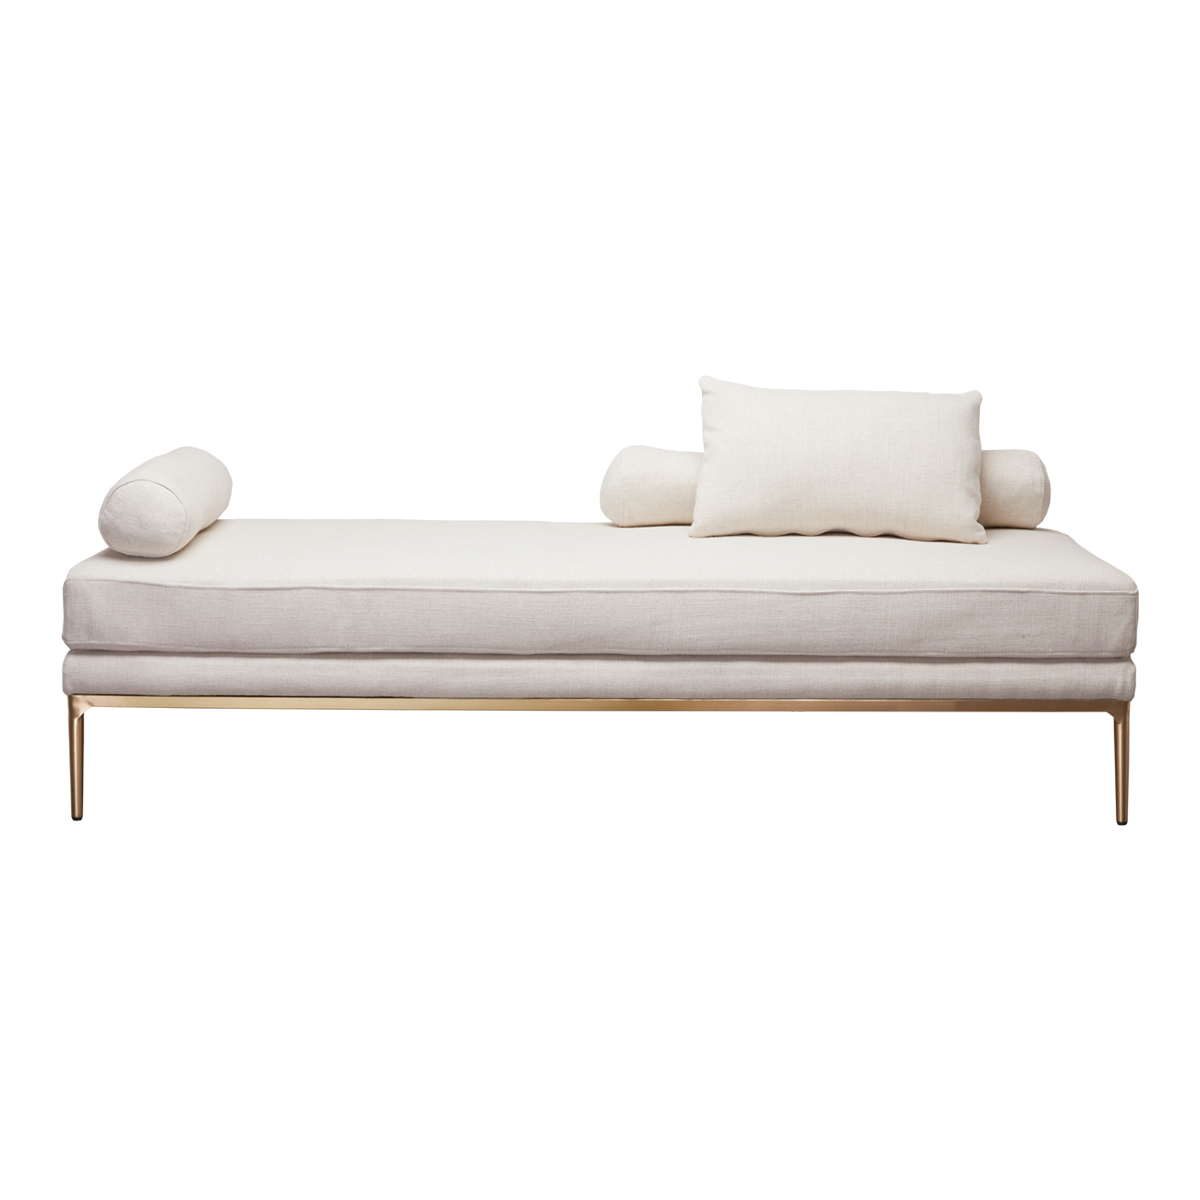 Delano Daybed – Antique White